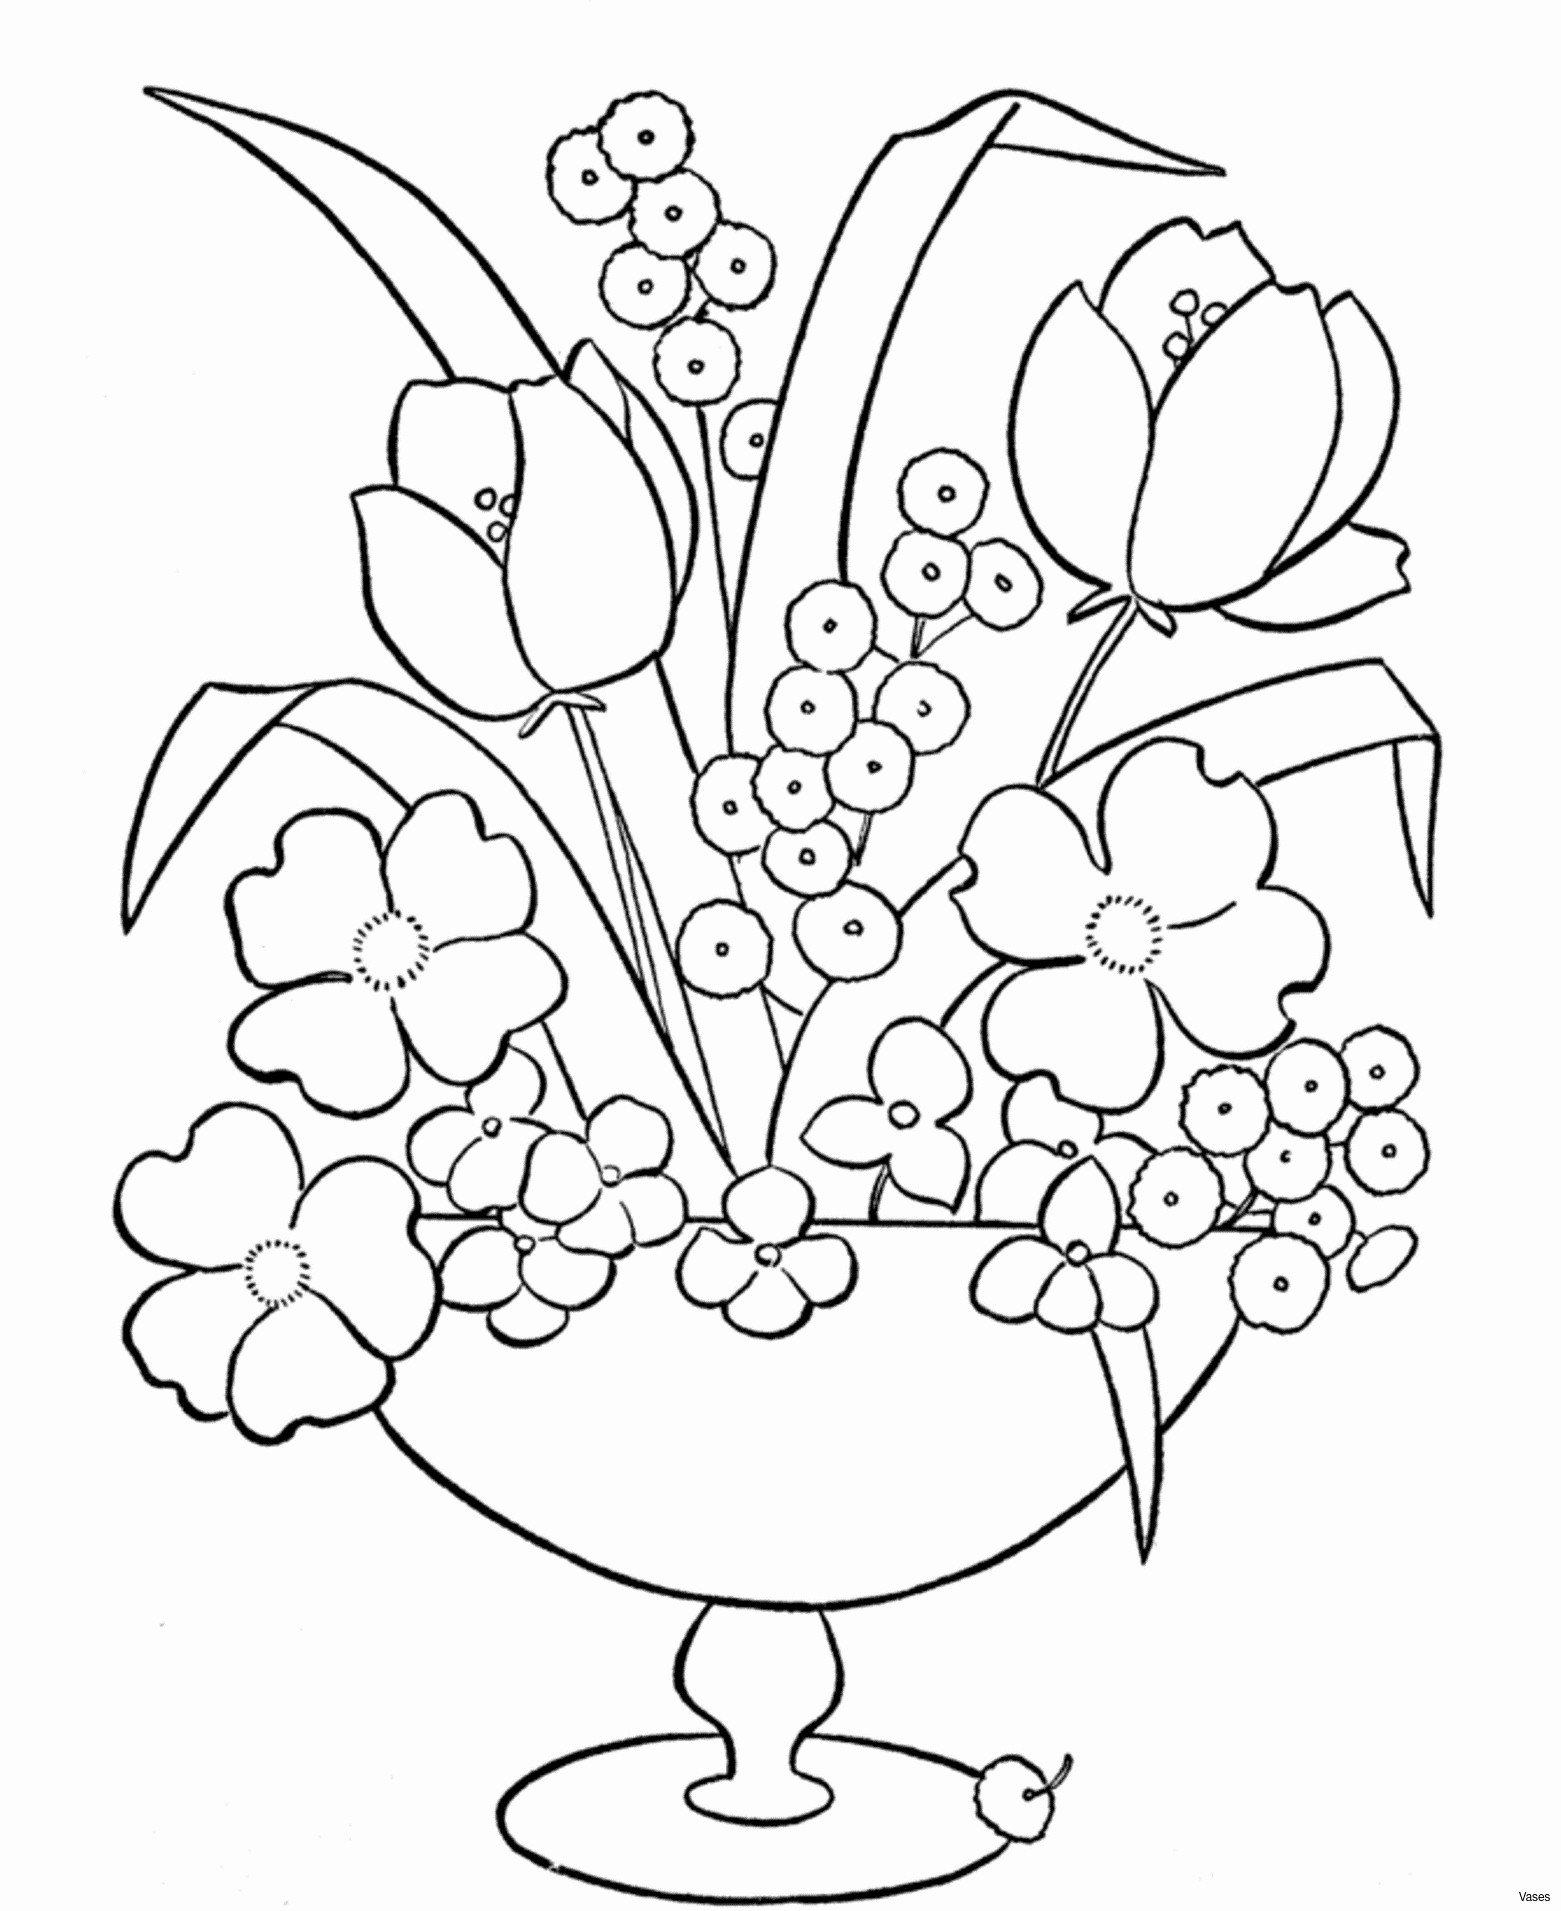 huge flower vase of picture to coloring page awesome cool vases flower vase coloring within fun coloring pages picture to coloring page awesome cool vases flower vase coloring page pages